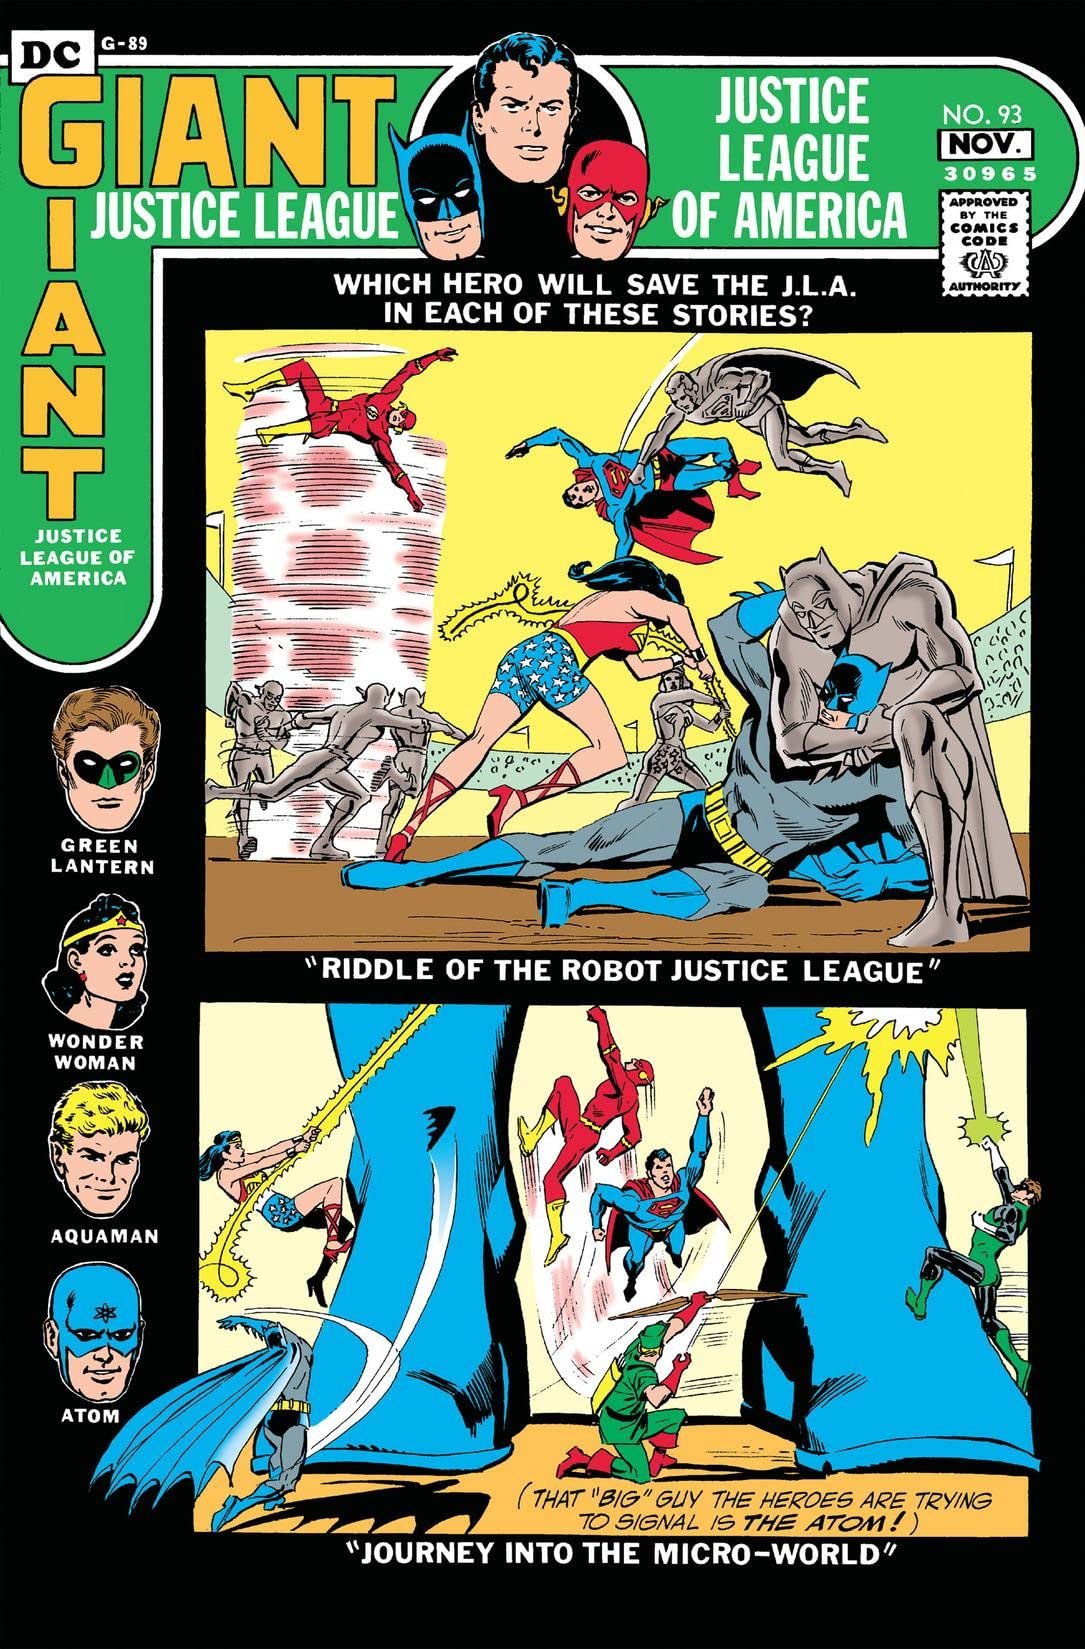 Justice League of America (1960-1987) #93